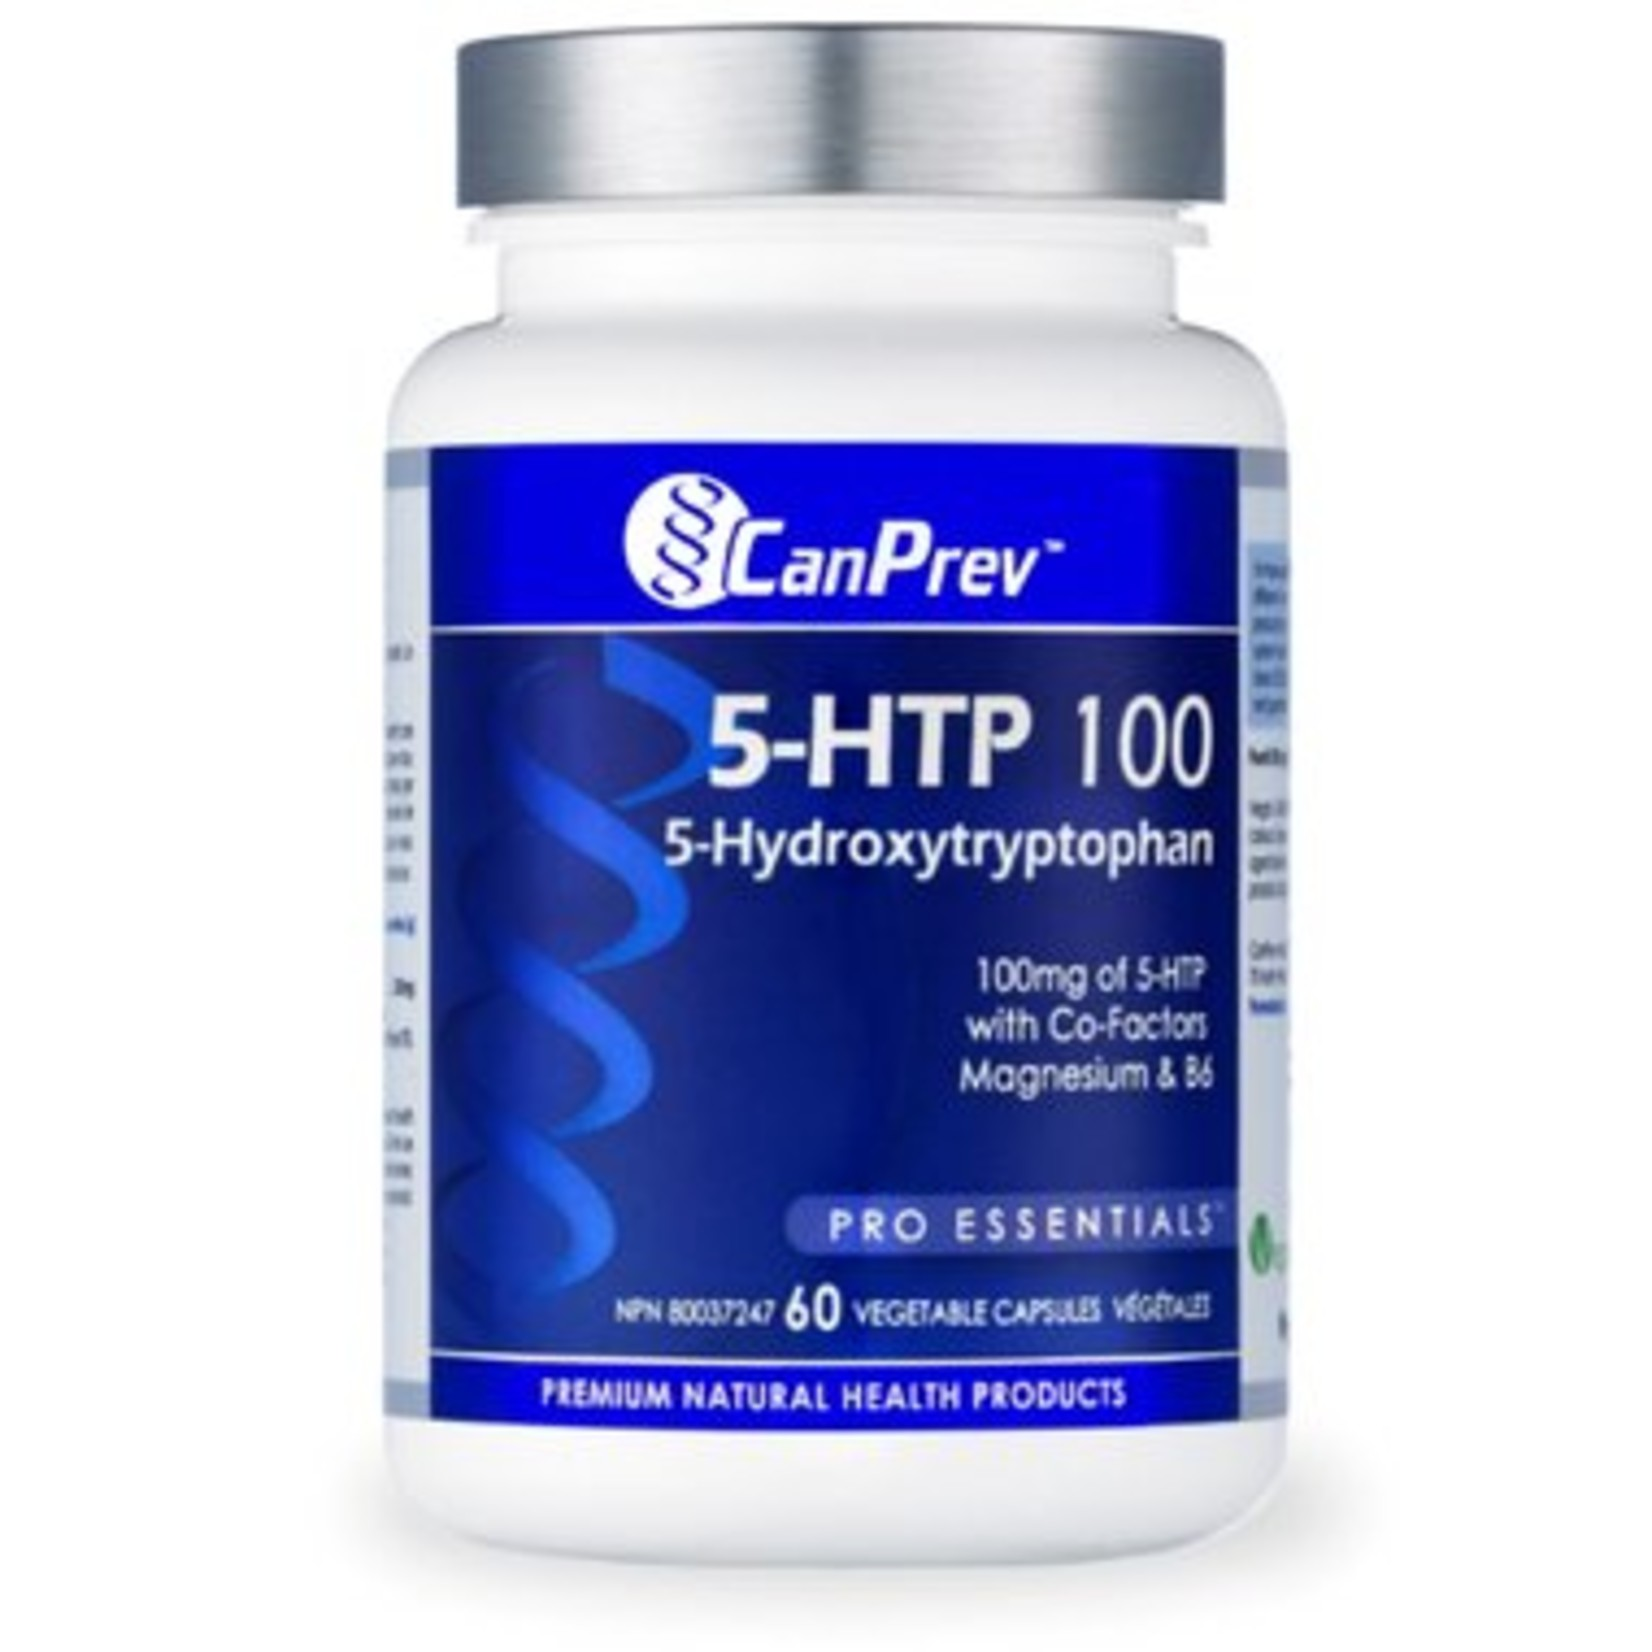 Can Prev Can Prev 5-HTP 100 with B6 & Mag 60 v-caps